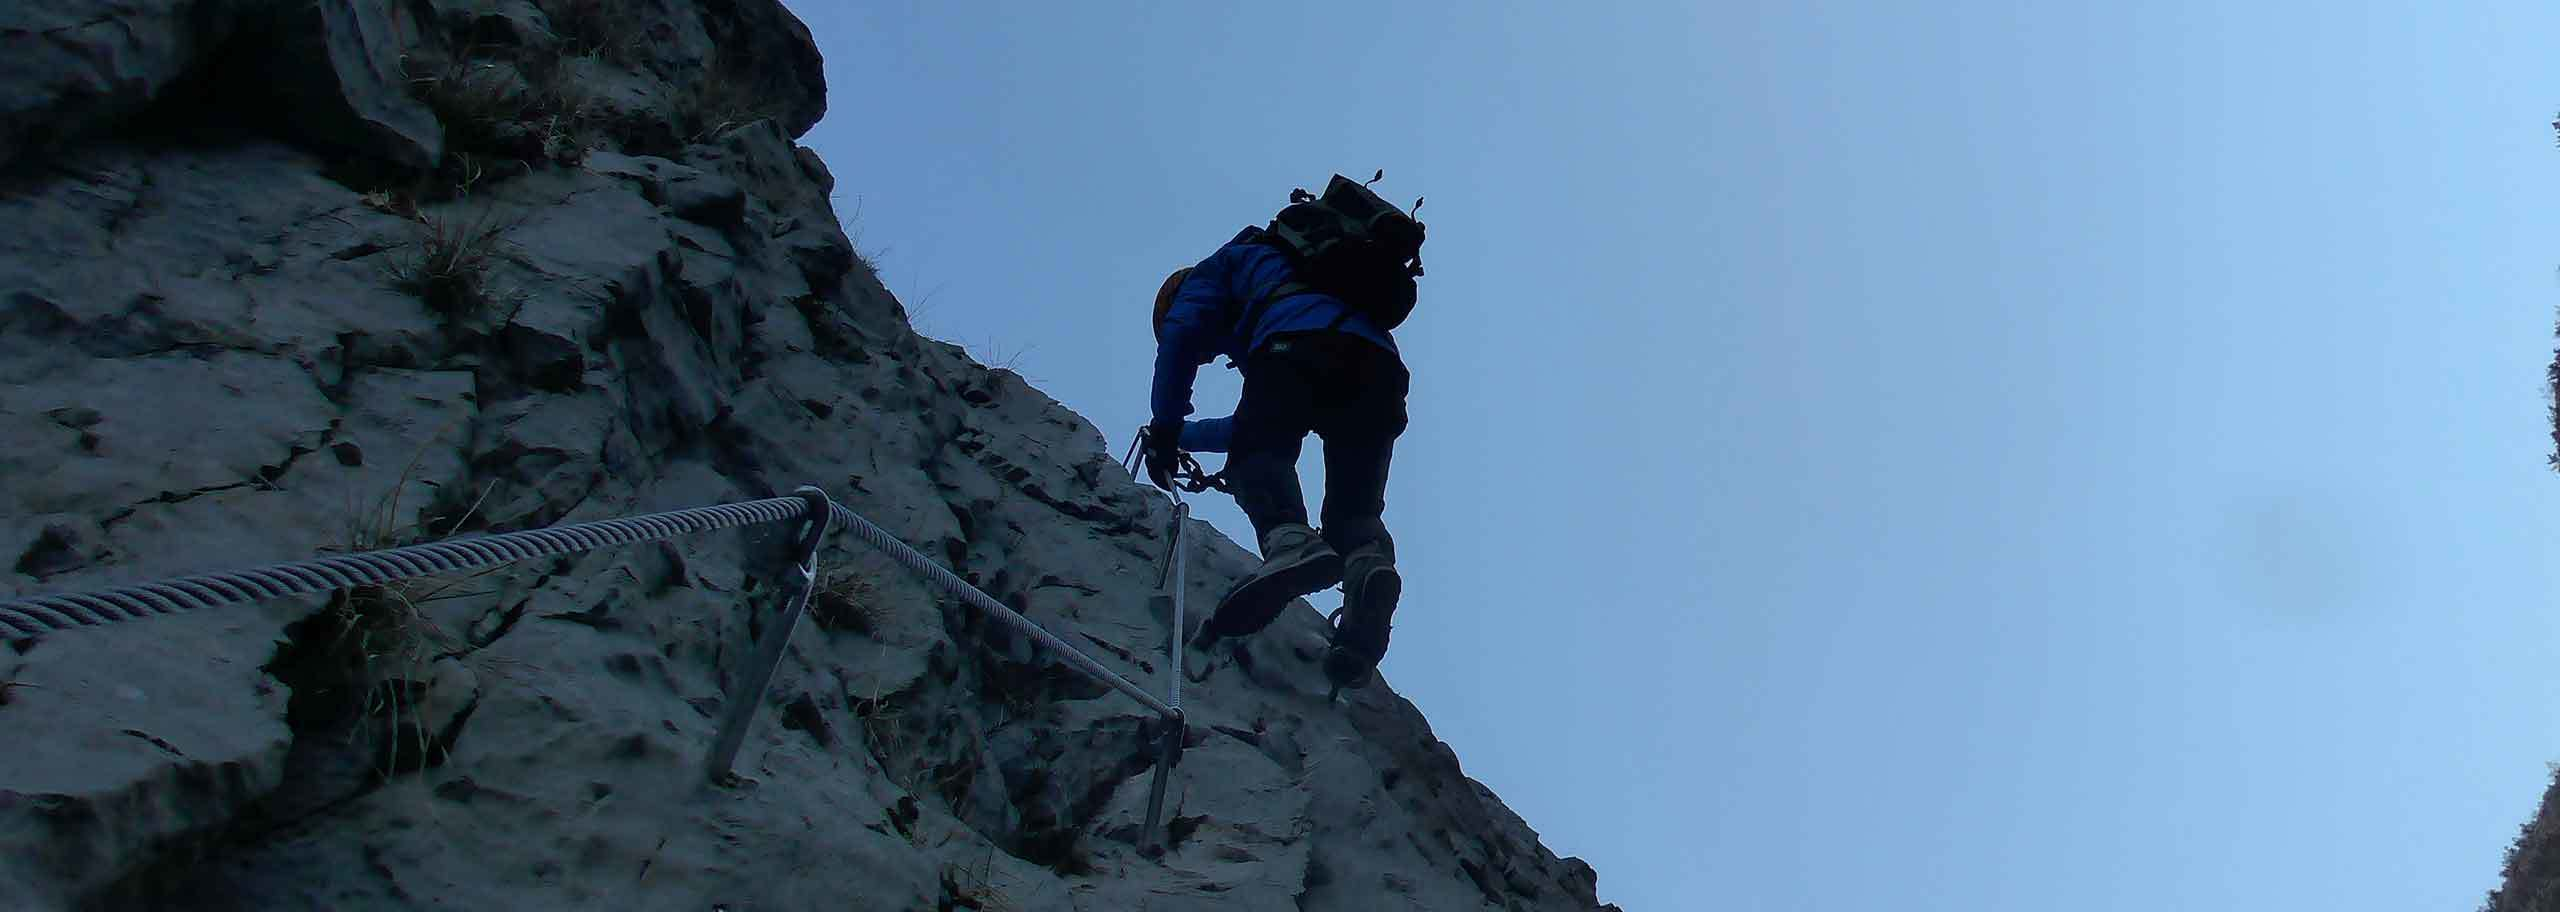 Via Ferrata in Cogne with Mountain Guide